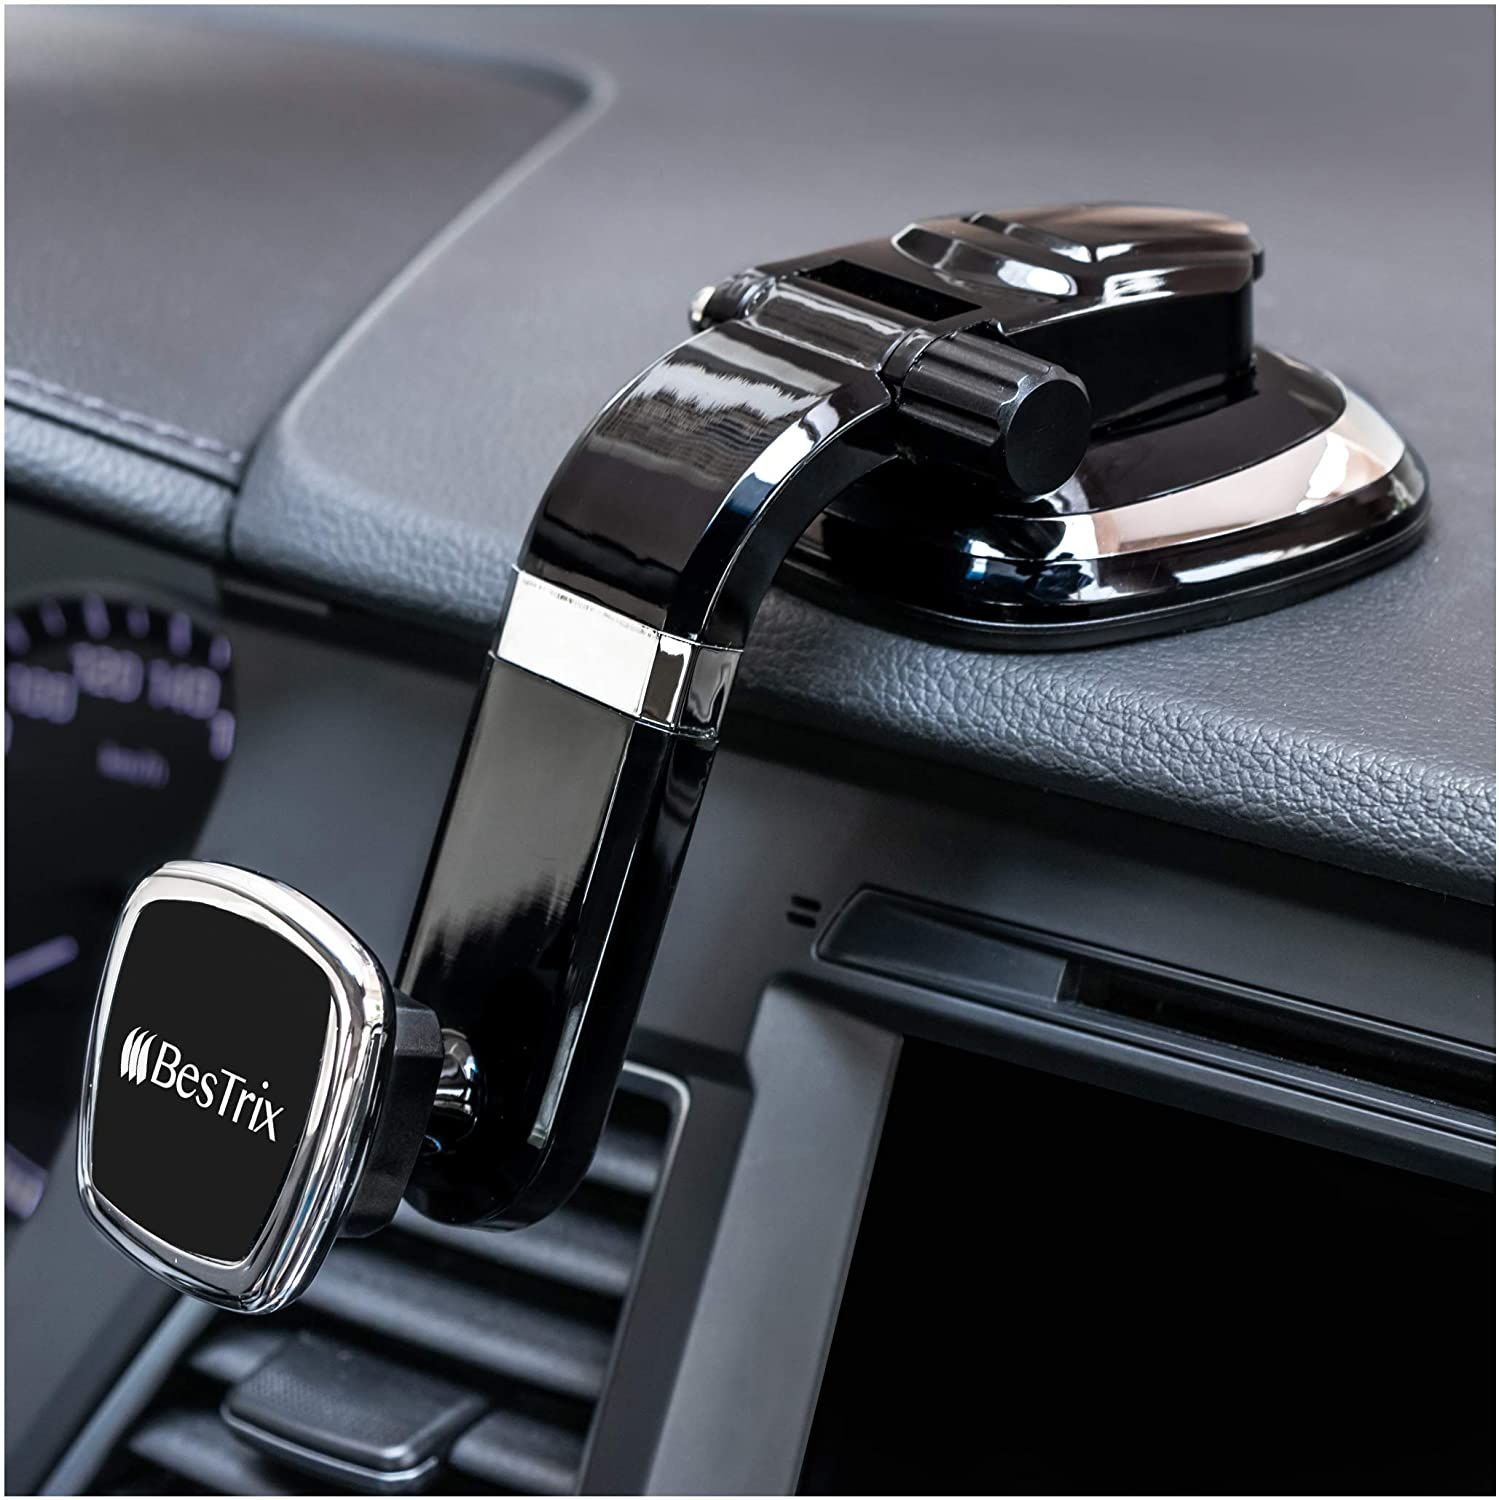 Cell Phone Holder For Car For Dashboards In 2020 Smartphone Car Mount Cell Phone Car Mount Phone Holder